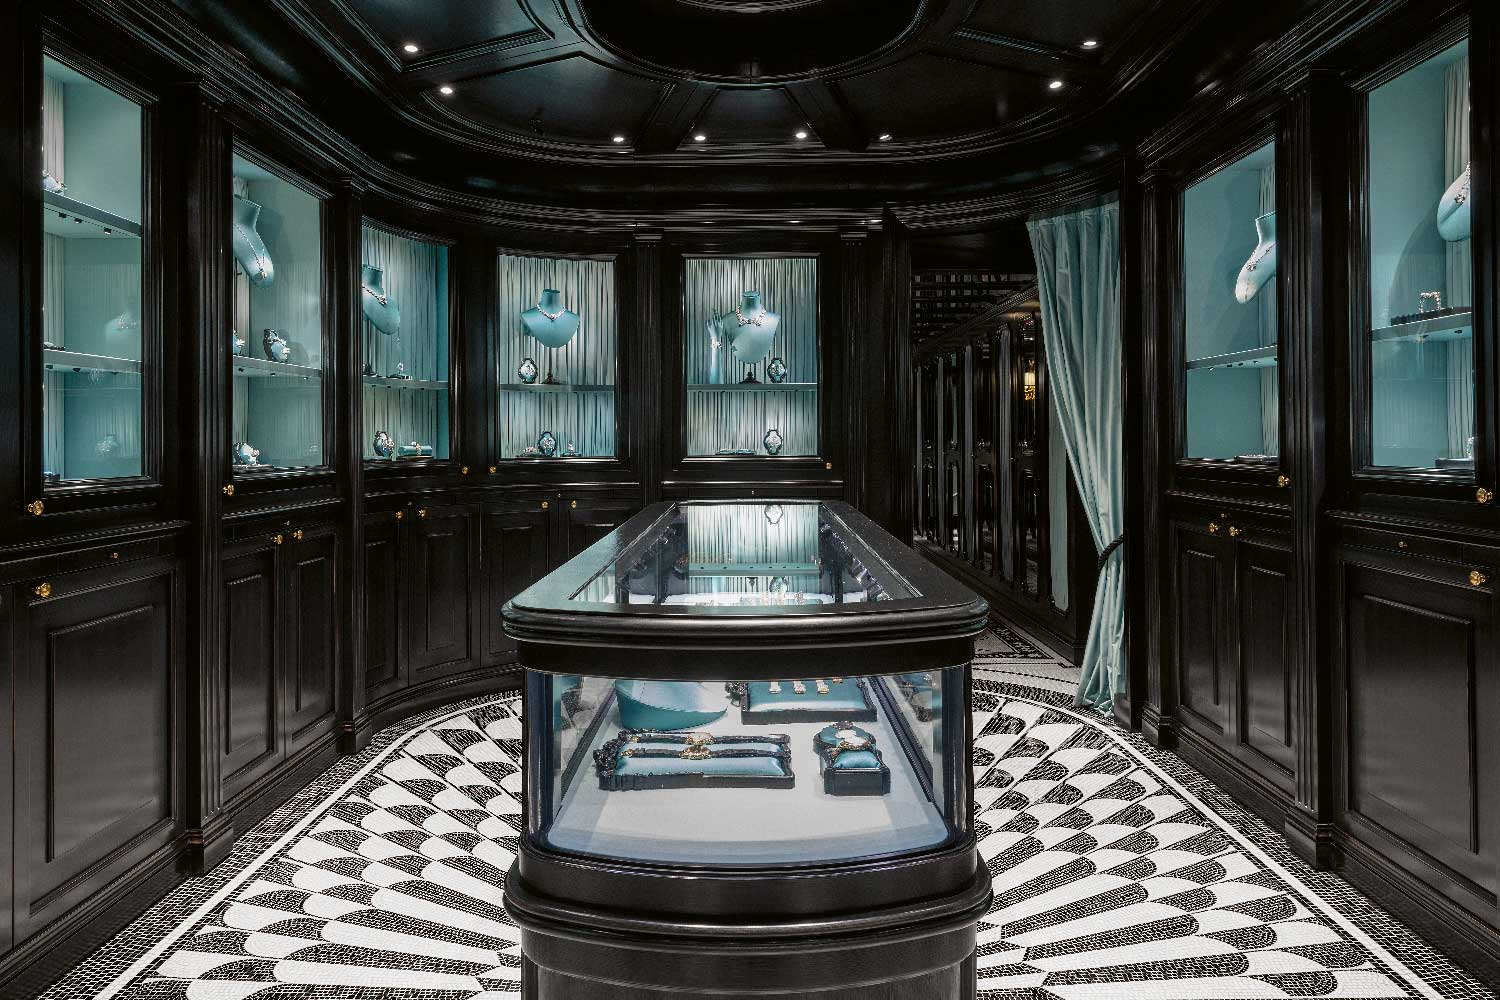 Gucci's dedicated fine watch and jewelry boutique at Place Vendôme, Paris